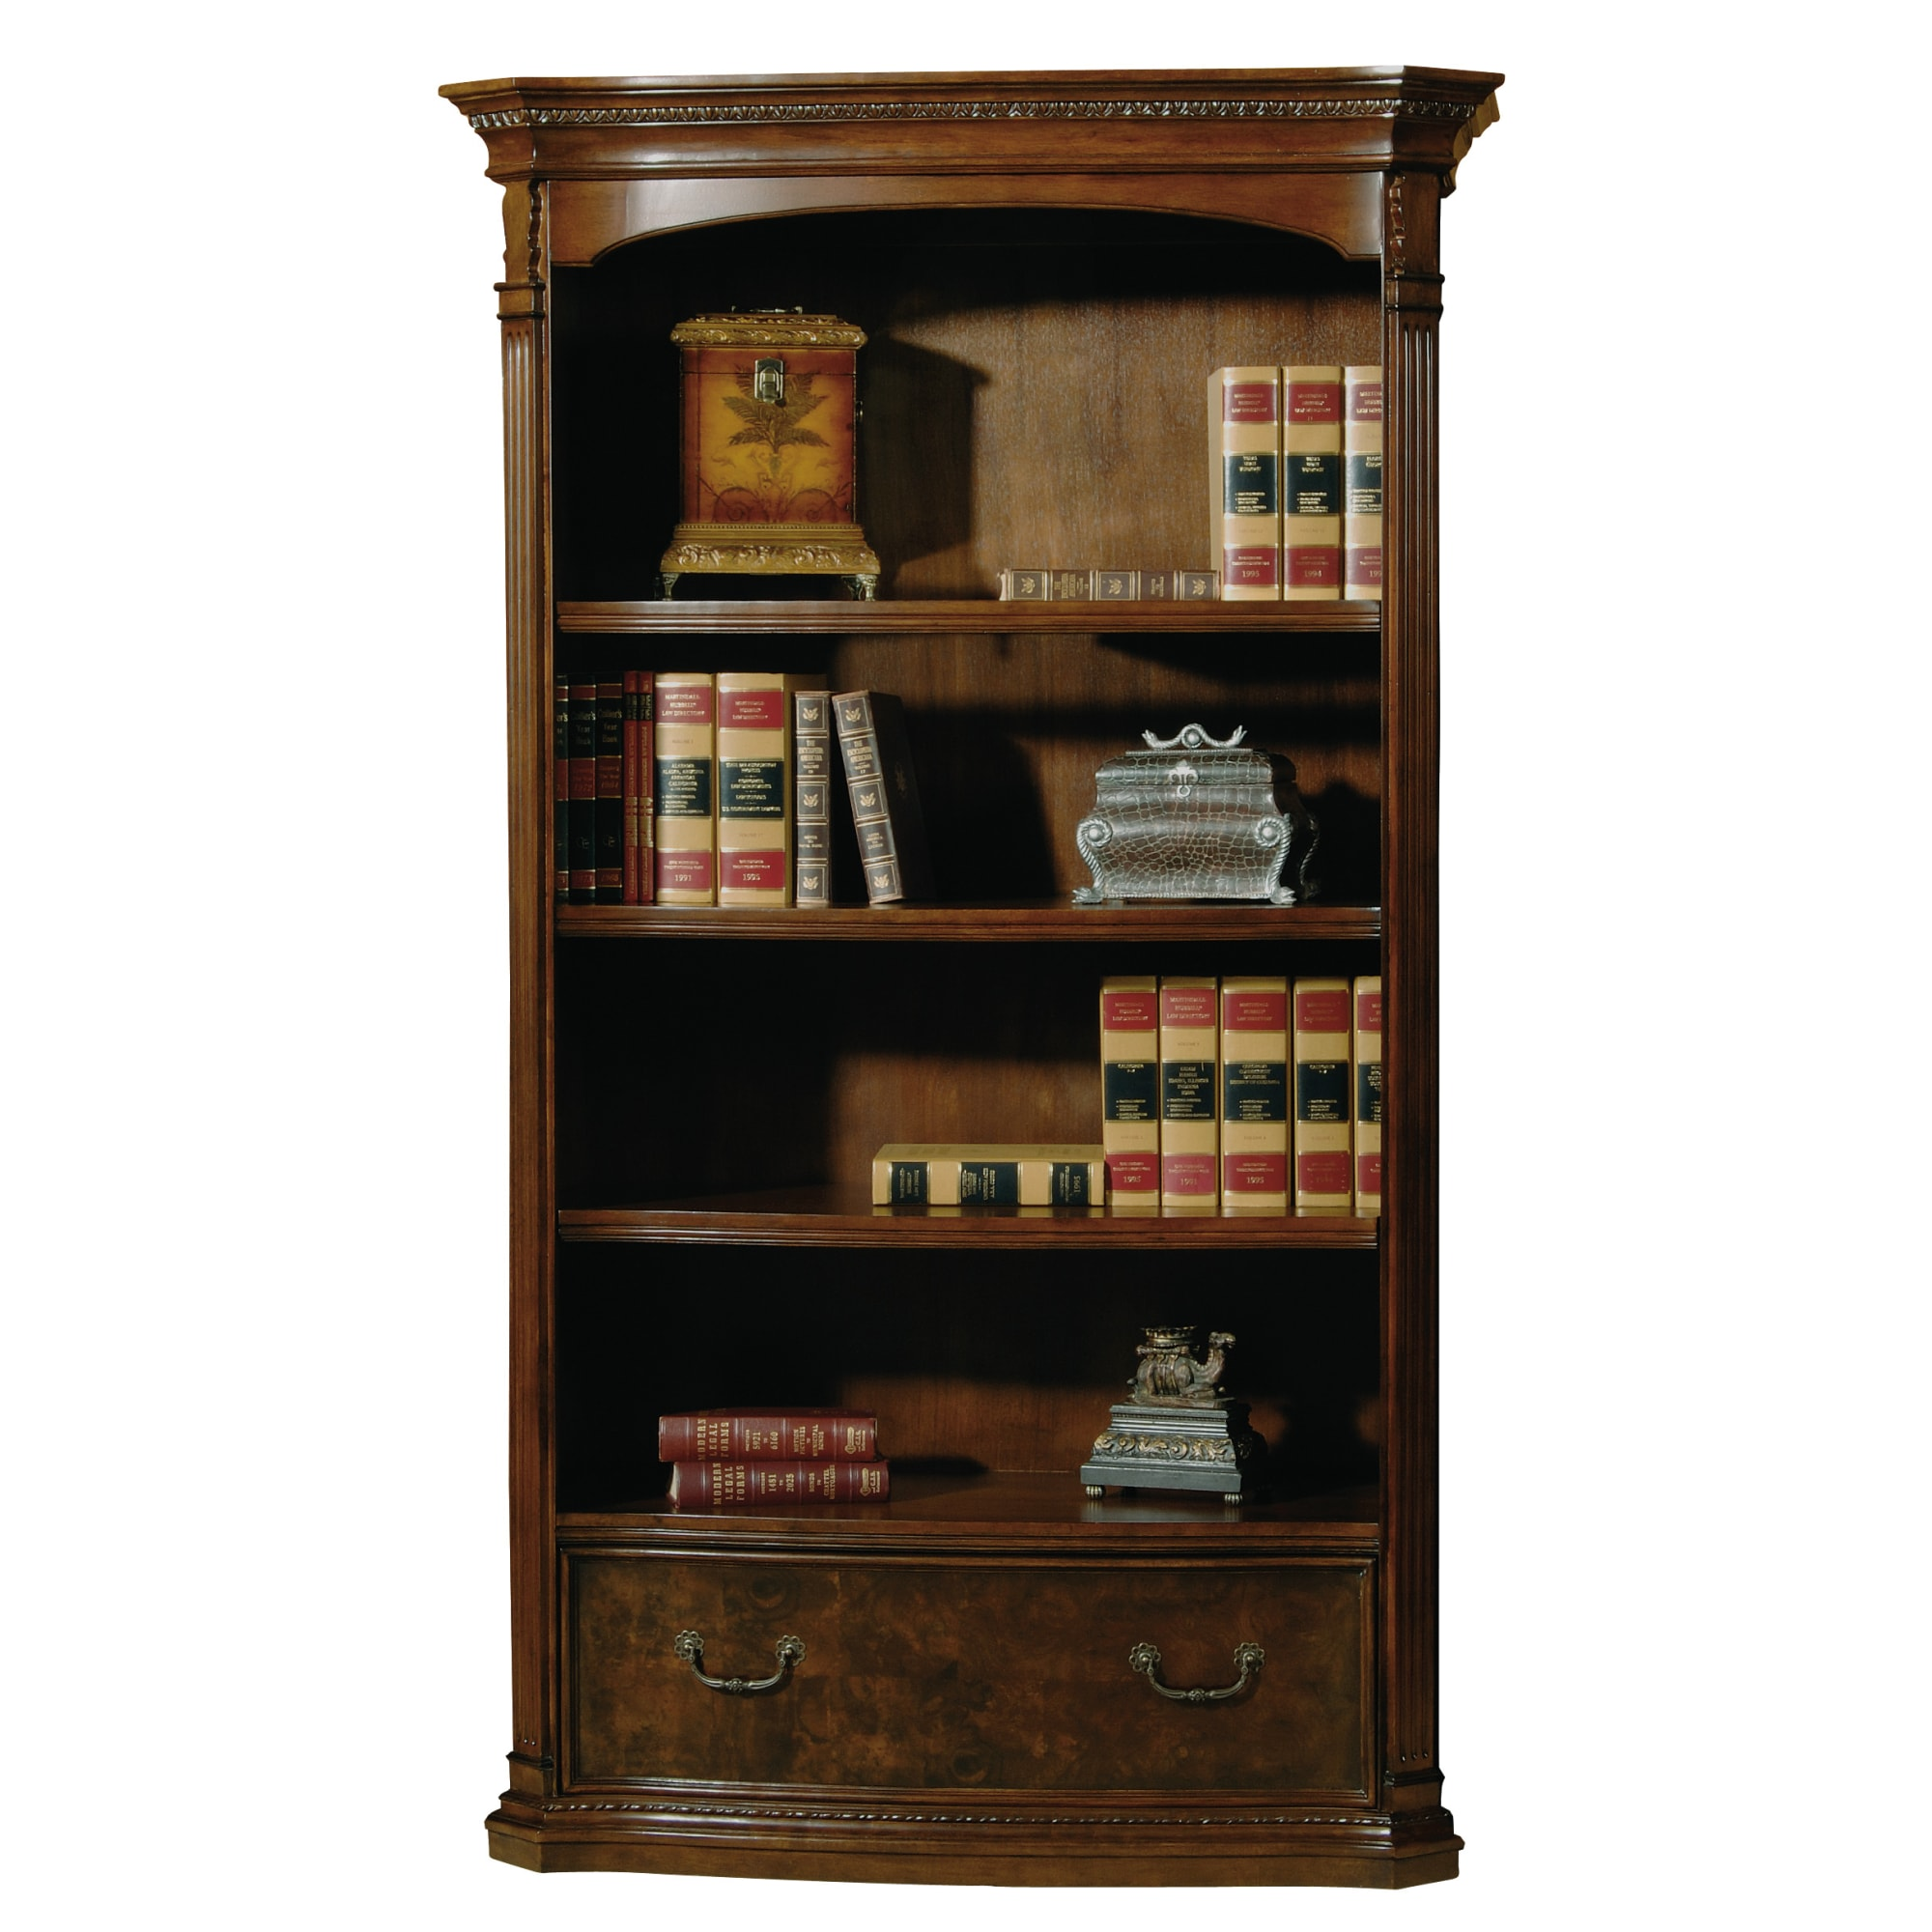 Image for 7-9164 office@home Old World Walnut Bookcase from Hekman Official Website